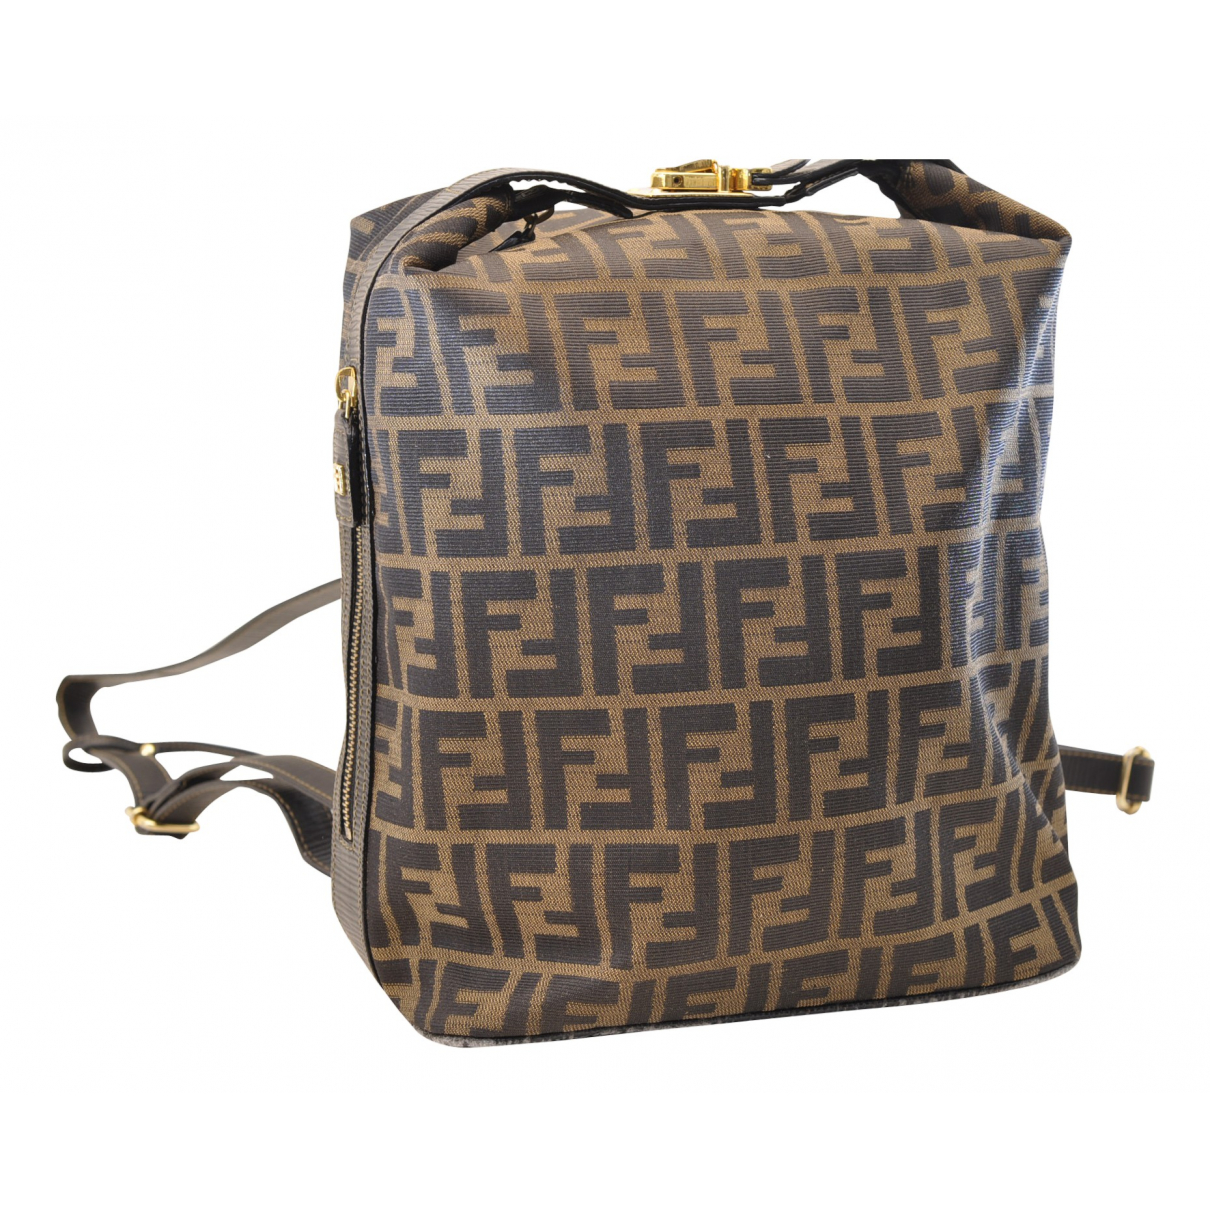 Fendi N Brown Cloth backpack for Women N